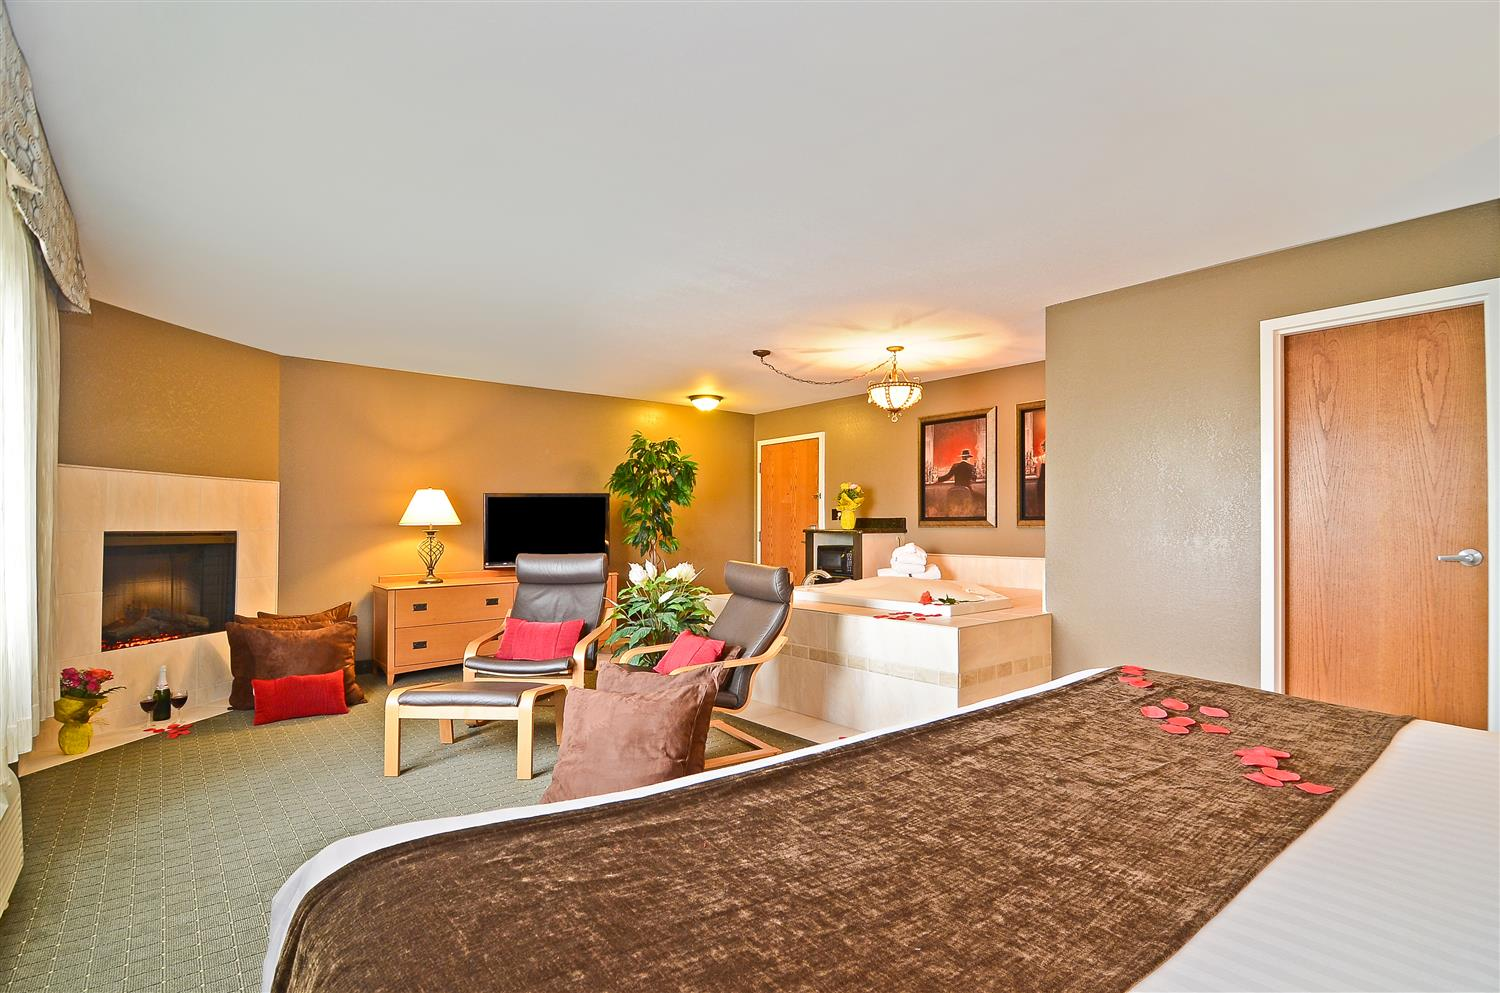 Deluxe King Suite With Jacuzzi Tub Fireplace And Separate Living Area